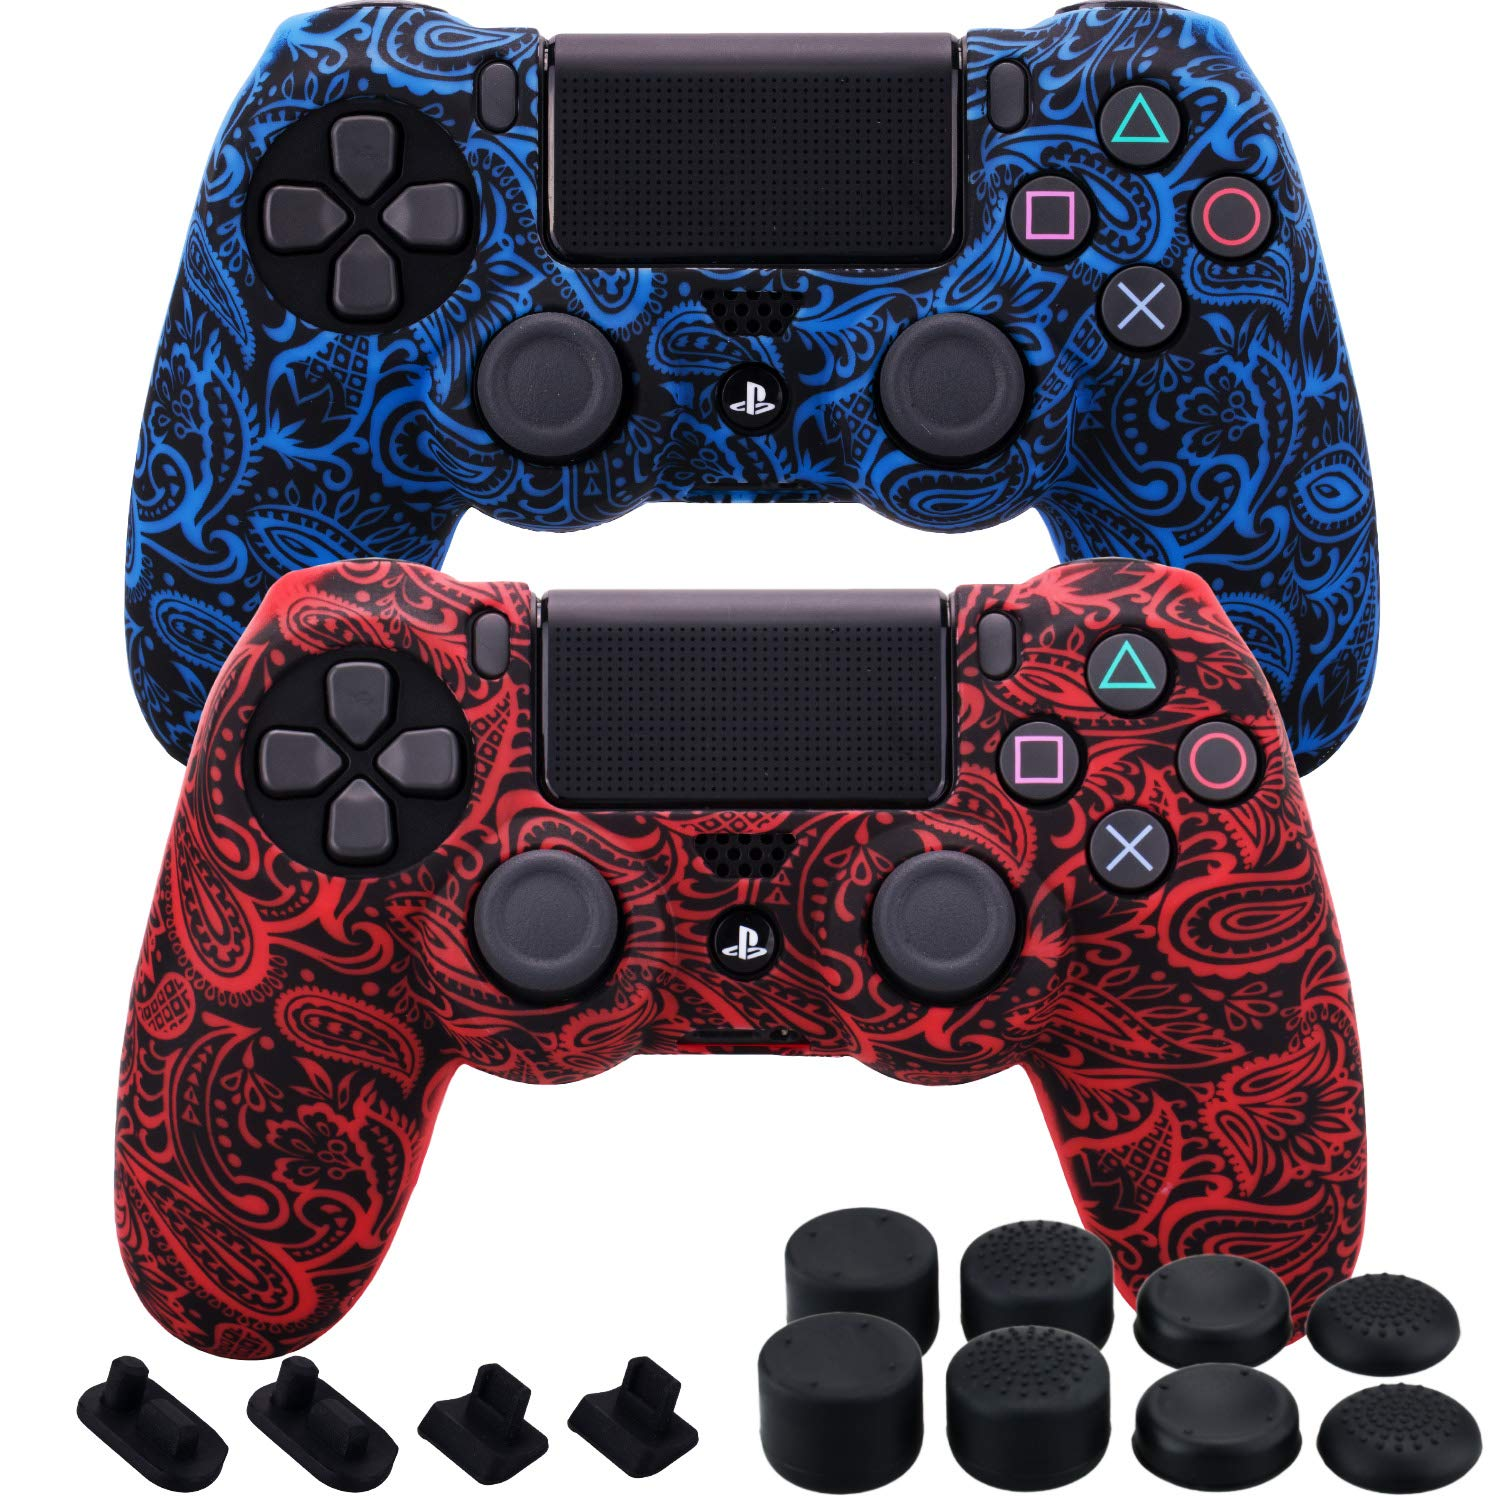 MXRC Silicone Rubber Cover Skin case Anti-Slip Water Transfer Customize Camouflage for PS4/SLIM/PRO Controller x 2 (Leaves Red + Blue) + FPS PRO Extra Height Thumb Grips x 8 + Dustproof Plug x 4